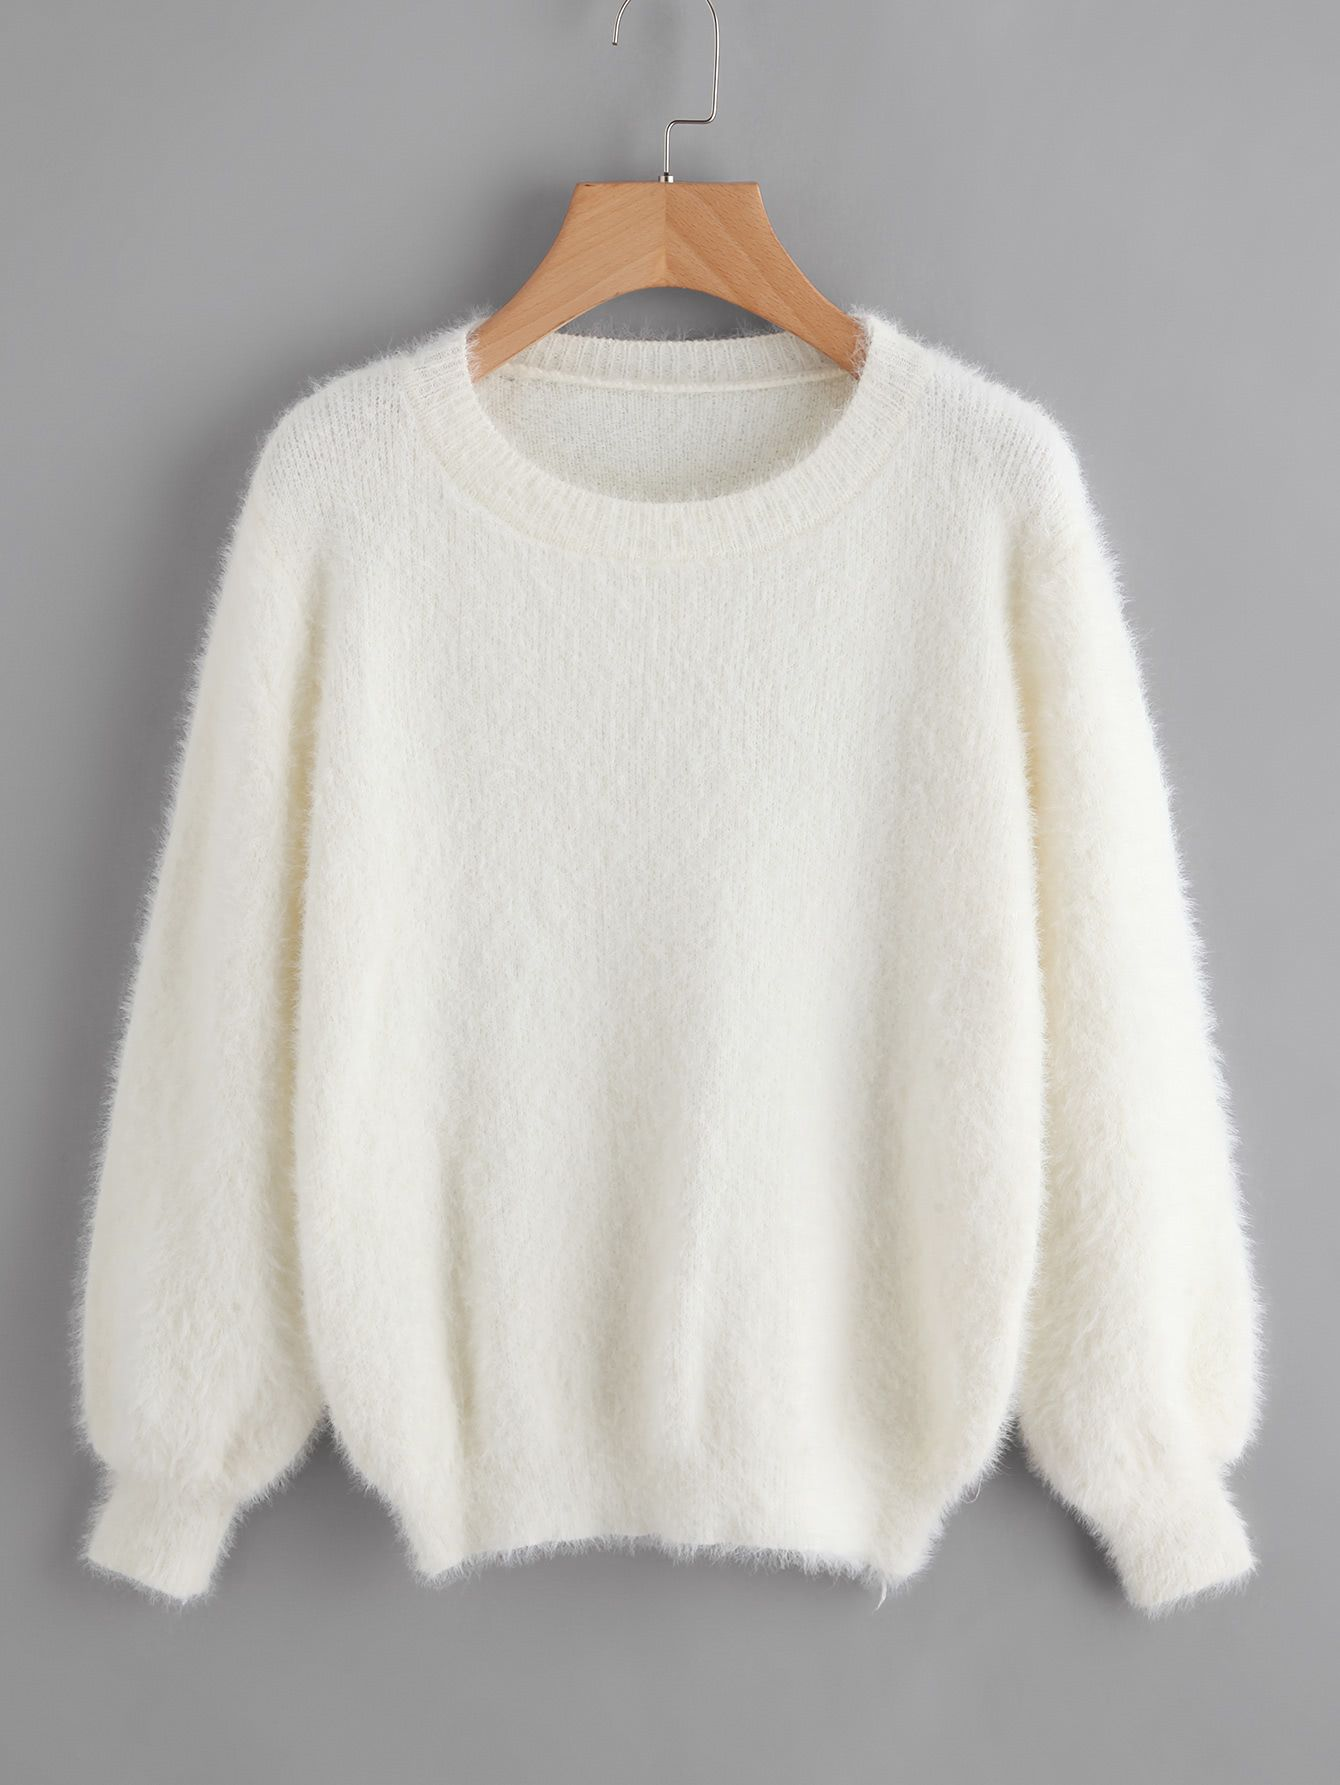 6bb9a82c56 Shop Lantern Sleeve Fluffy Sweater online. SheIn offers Lantern Sleeve  Fluffy Sweater & more to fit your fashionable needs.